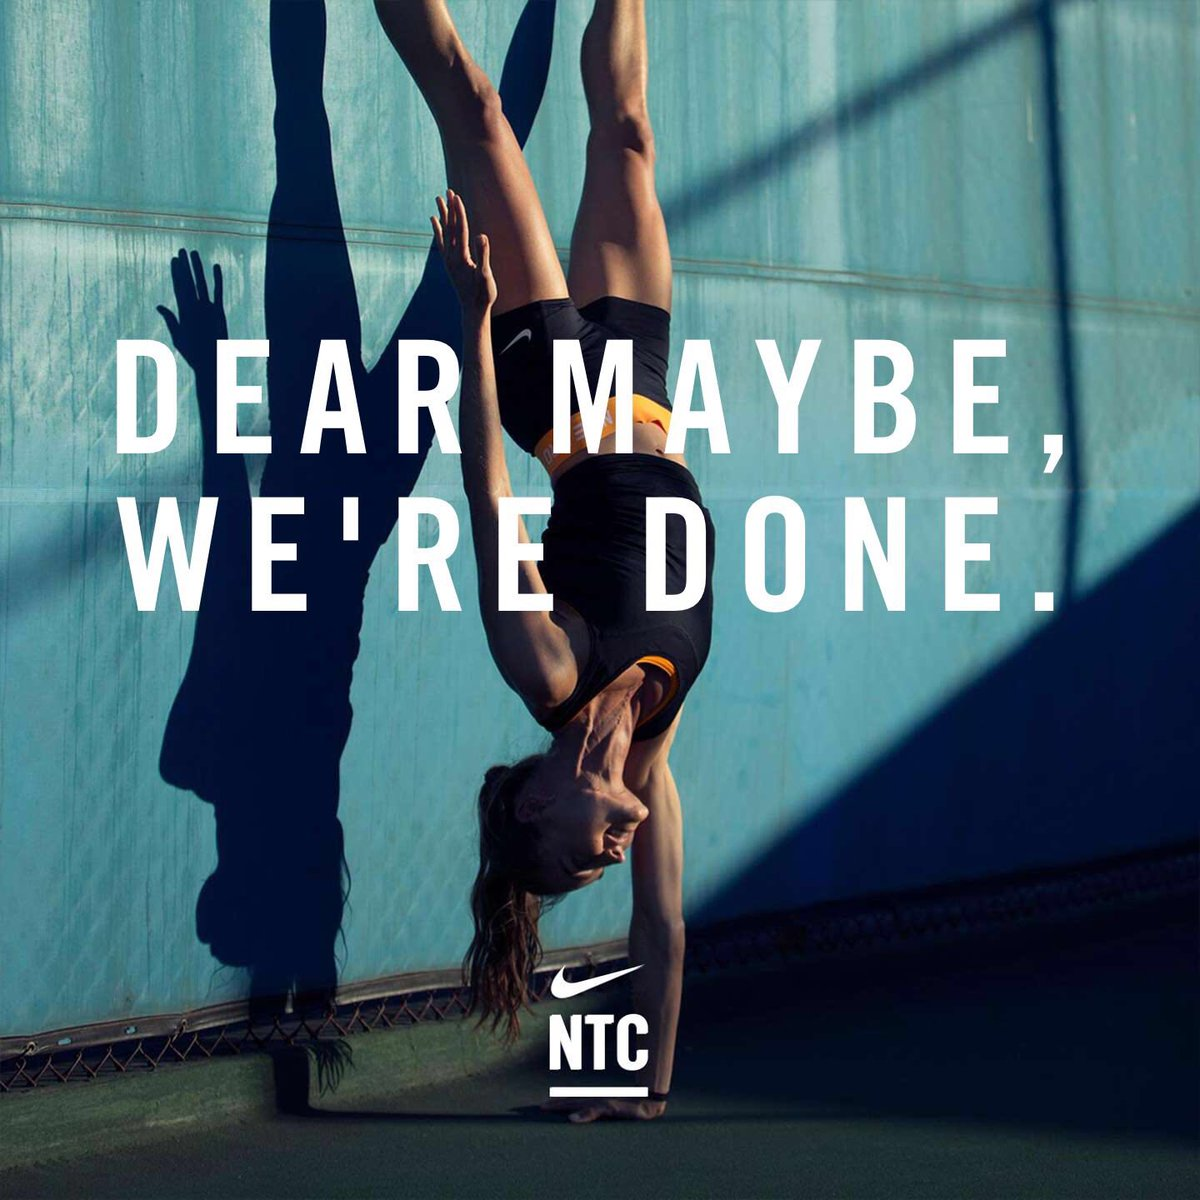 I just completed a workout with Nike Training Club! #powerup #justdoit #justtrain #justtraining #nike #niketraining #niketrainingclub #ntc #greatjob #greatjobnike #wednesday #wednesdaymotivation #wednesdaymorning #january #january2021